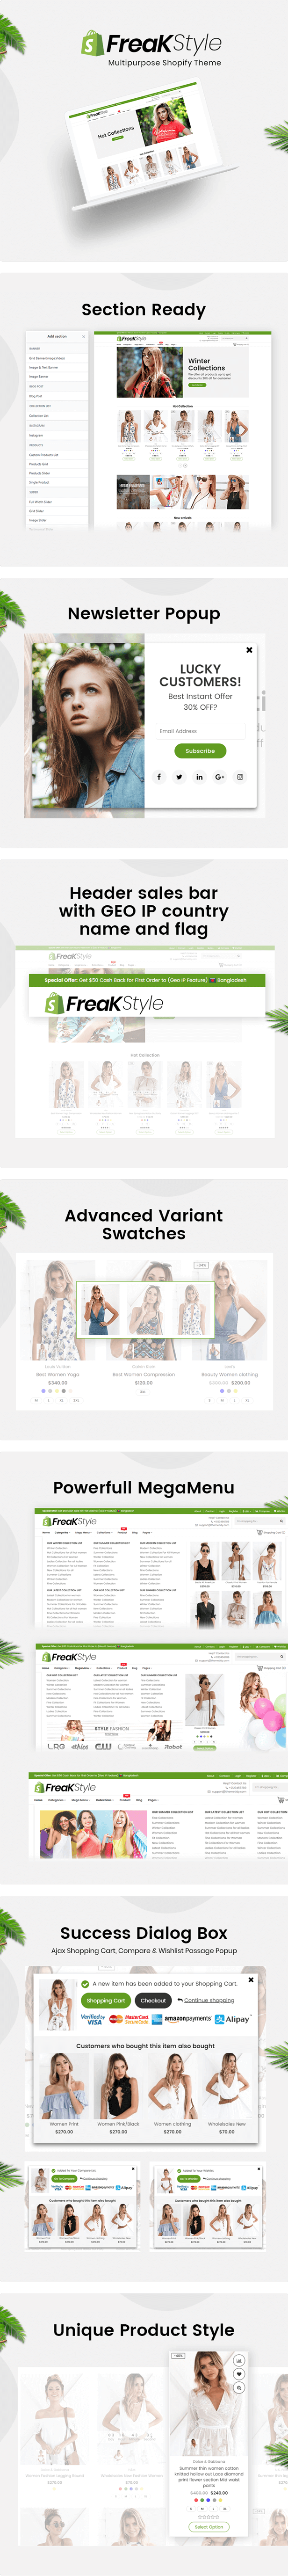 Freak - Fashion Shopify Theme Template Responsive Multipurpose Ecommerce